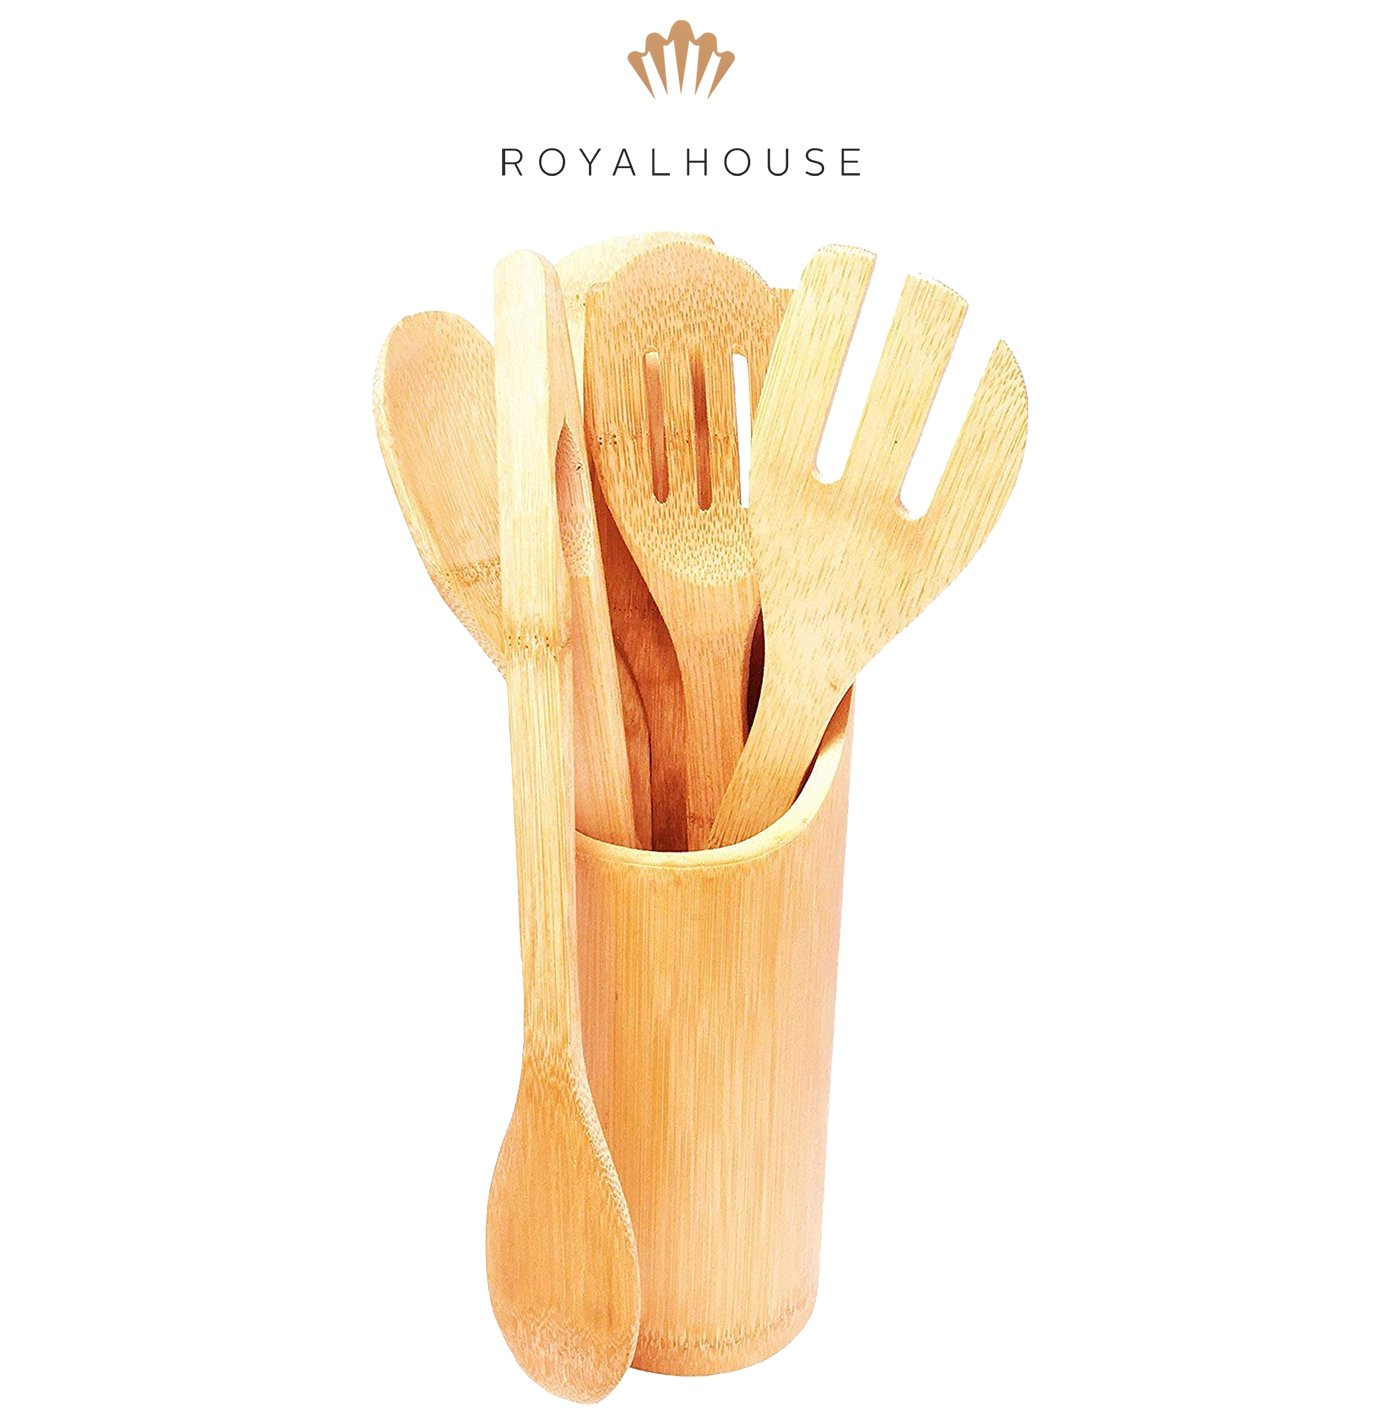 Bamboo Kitchen Utensils Set of 6 – Cooking & Serving Set made of Natural Bamboo with variety of wooden Spatulas, Spoons and Holder